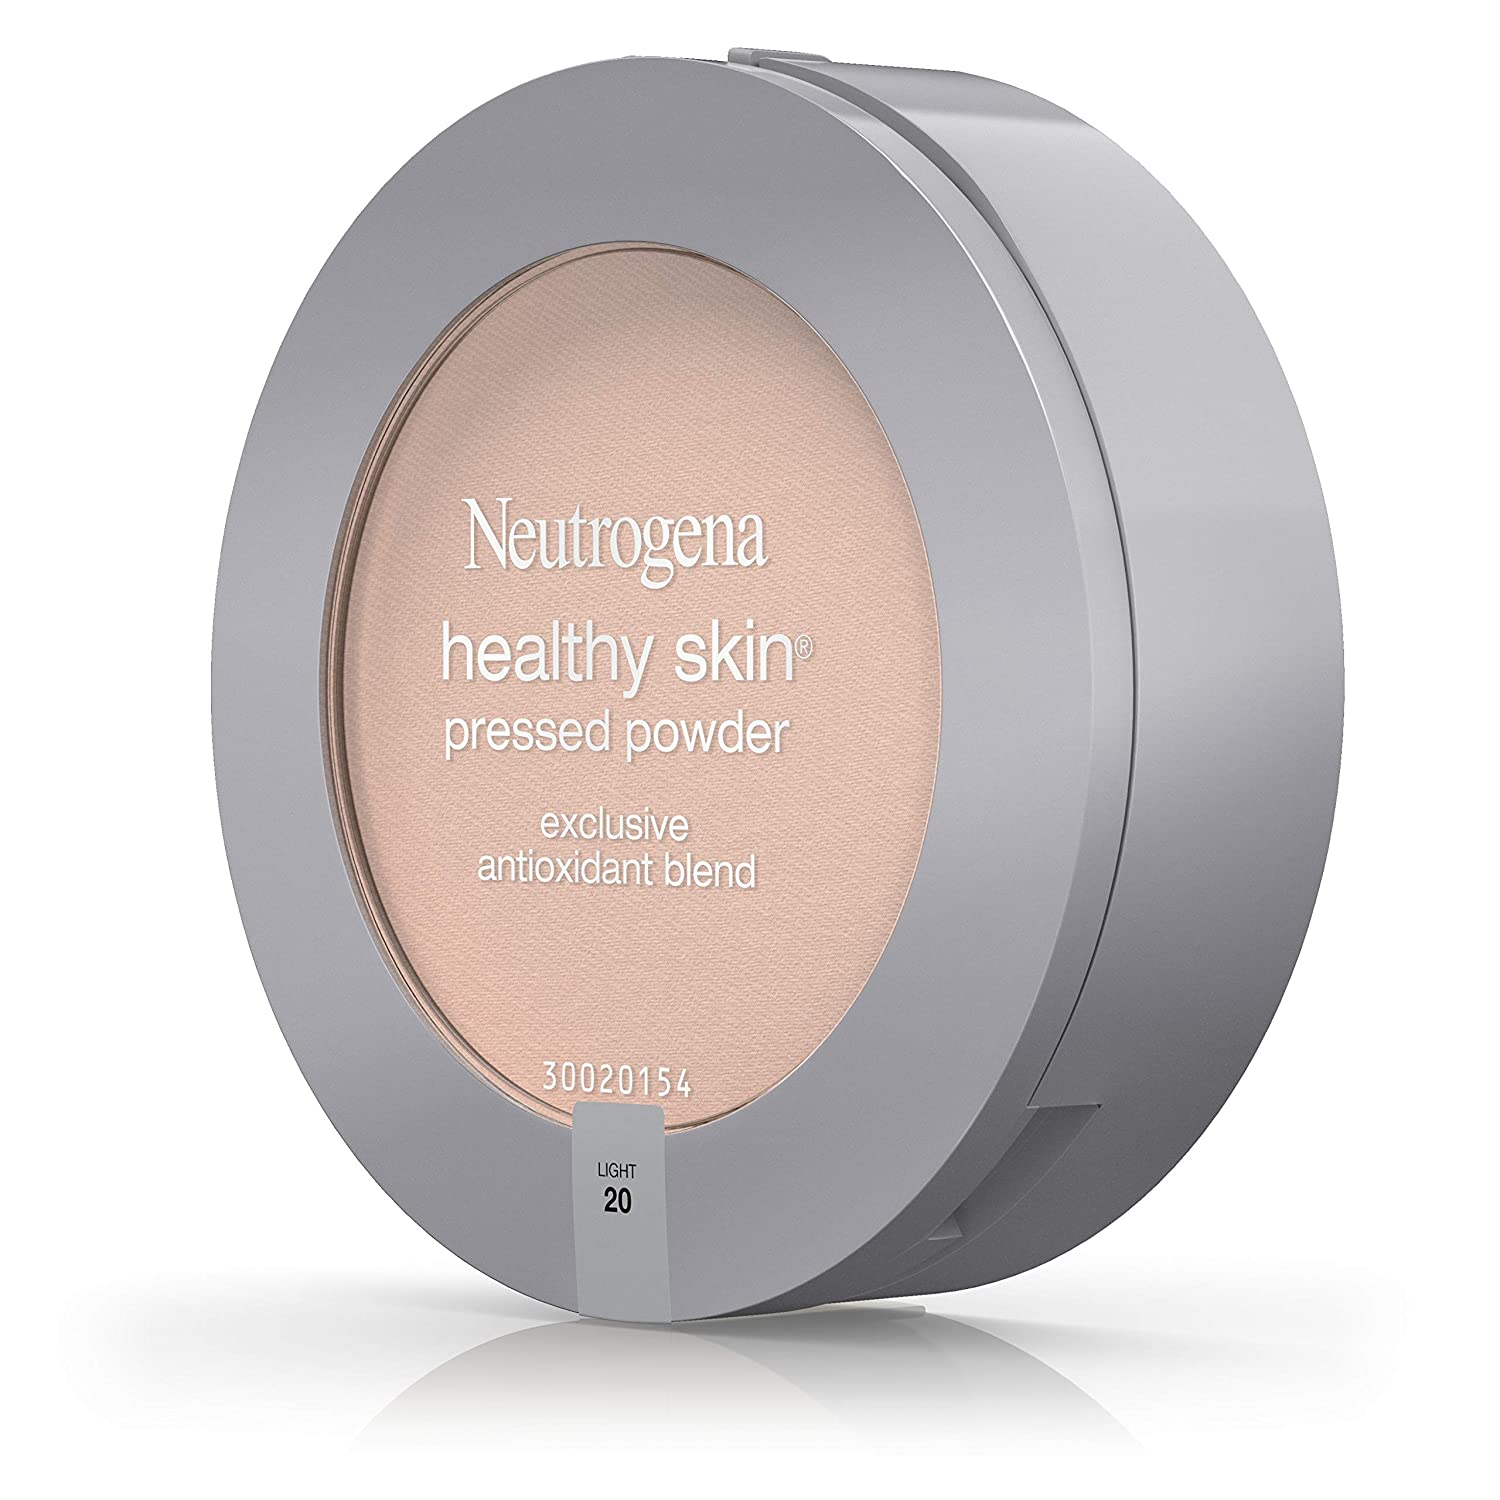 Best compact powder for oily skin in India